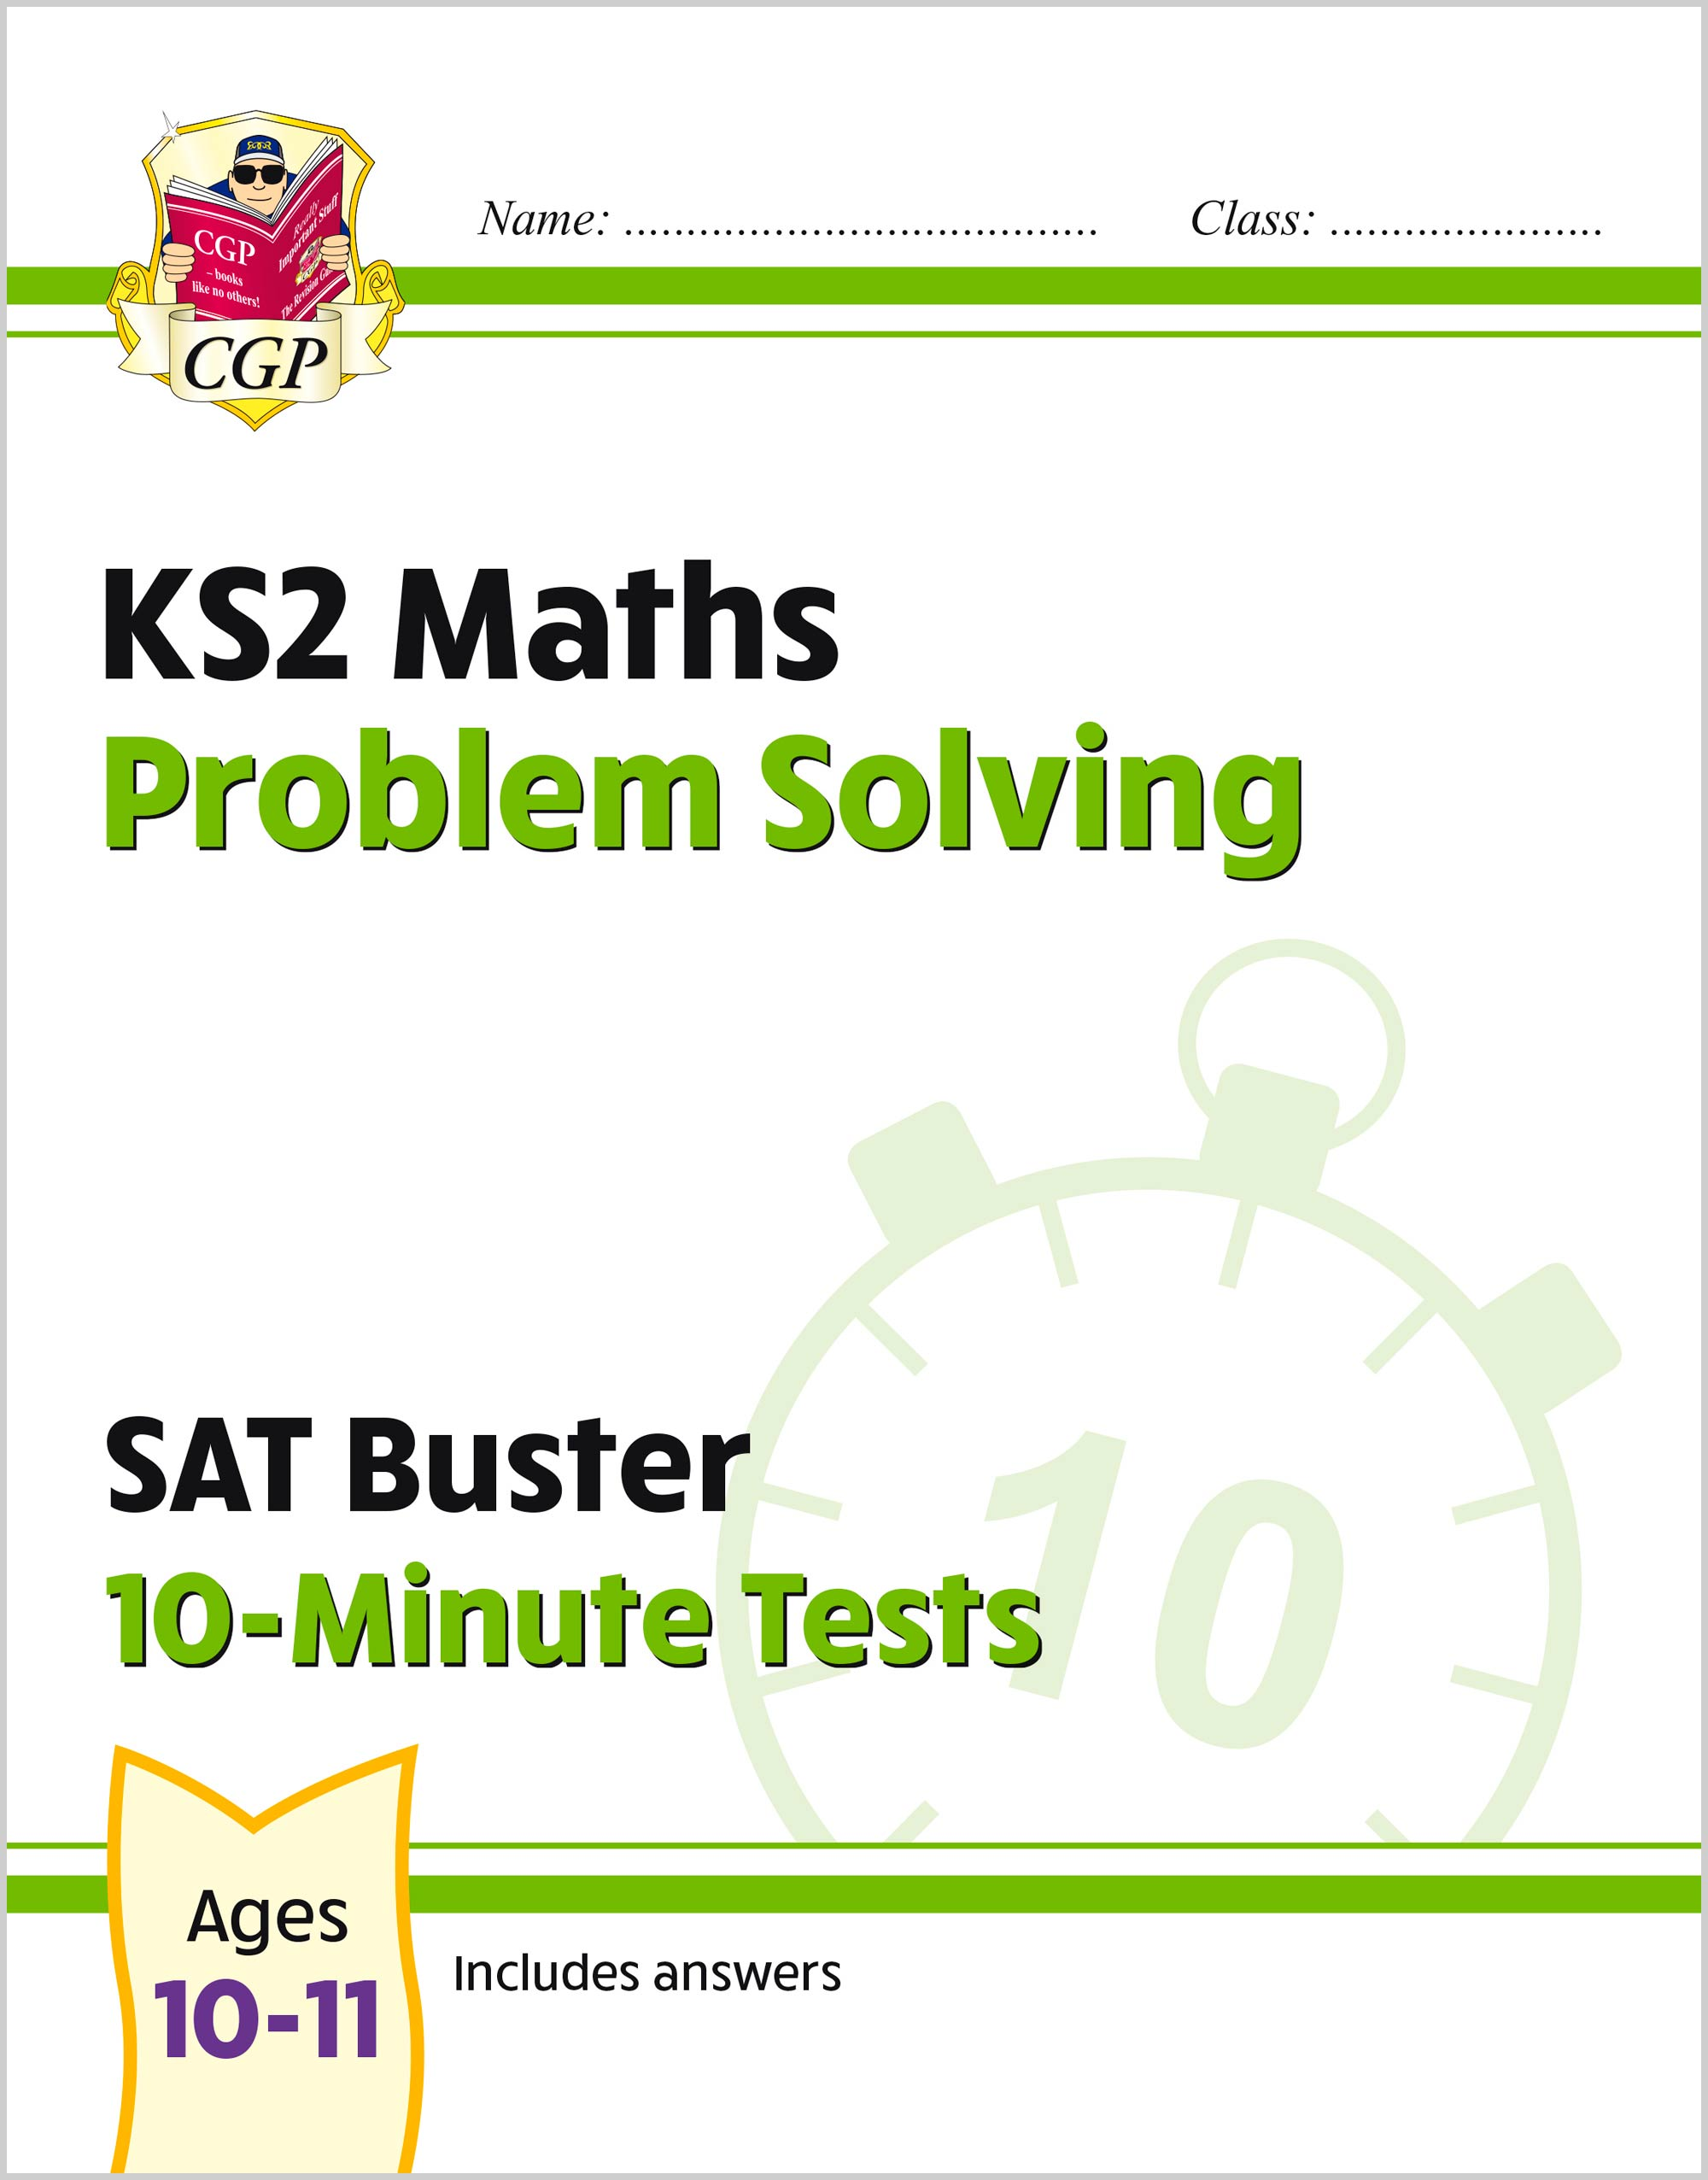 MPSXP21 - New KS2 Maths SAT Buster 10-Minute Tests - Problem Solving (for the 2020 tests)